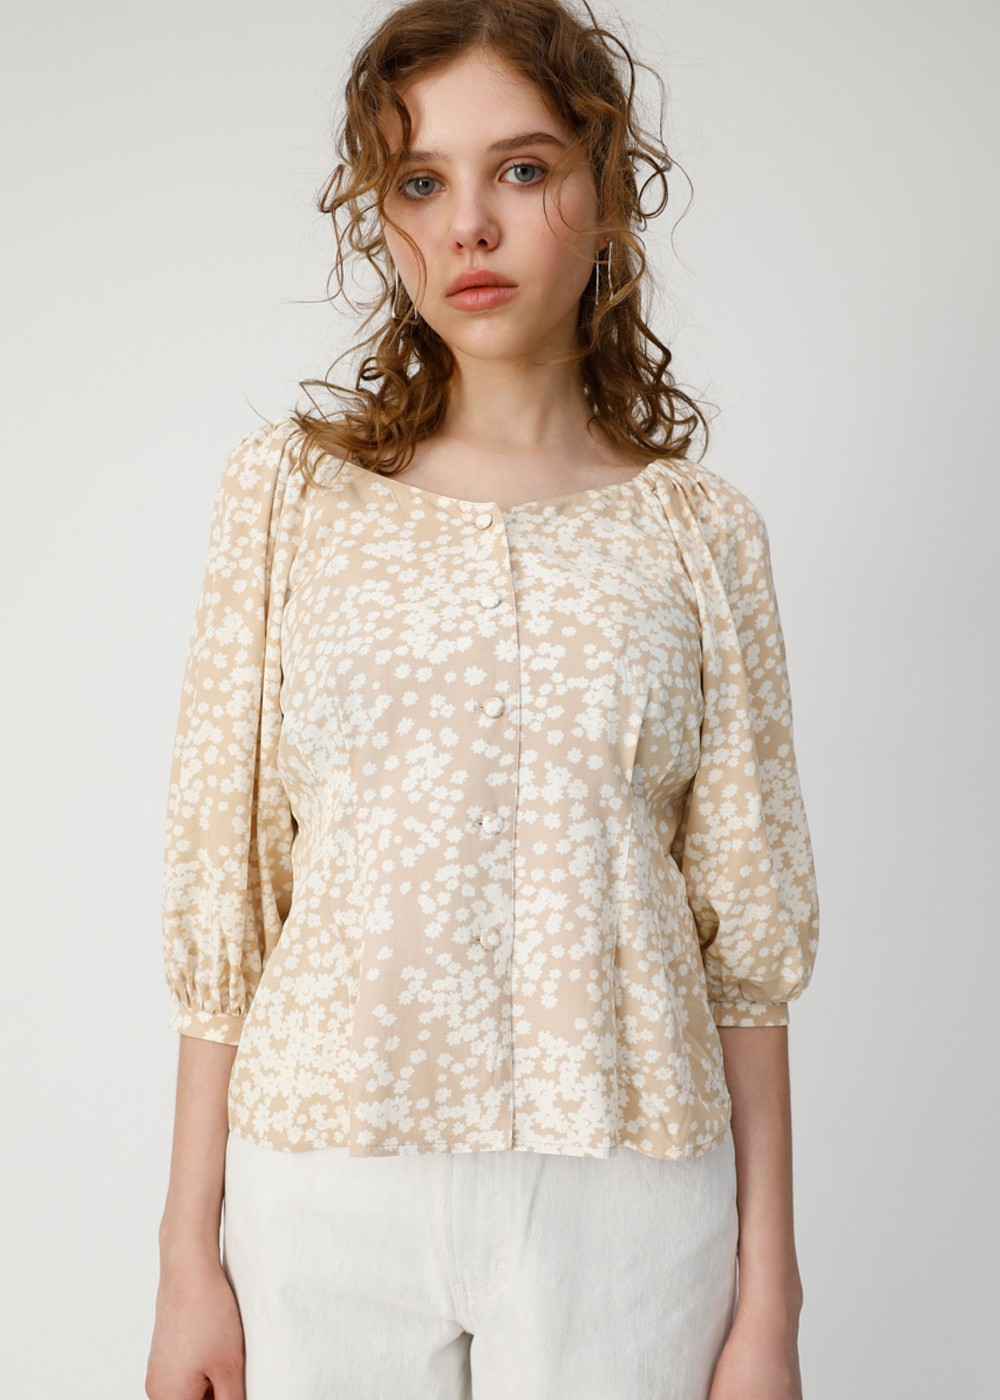 【最大70%OFF】2WAY FLOWER PRINT TOP|柄BEG|カットソー|MOUSSY